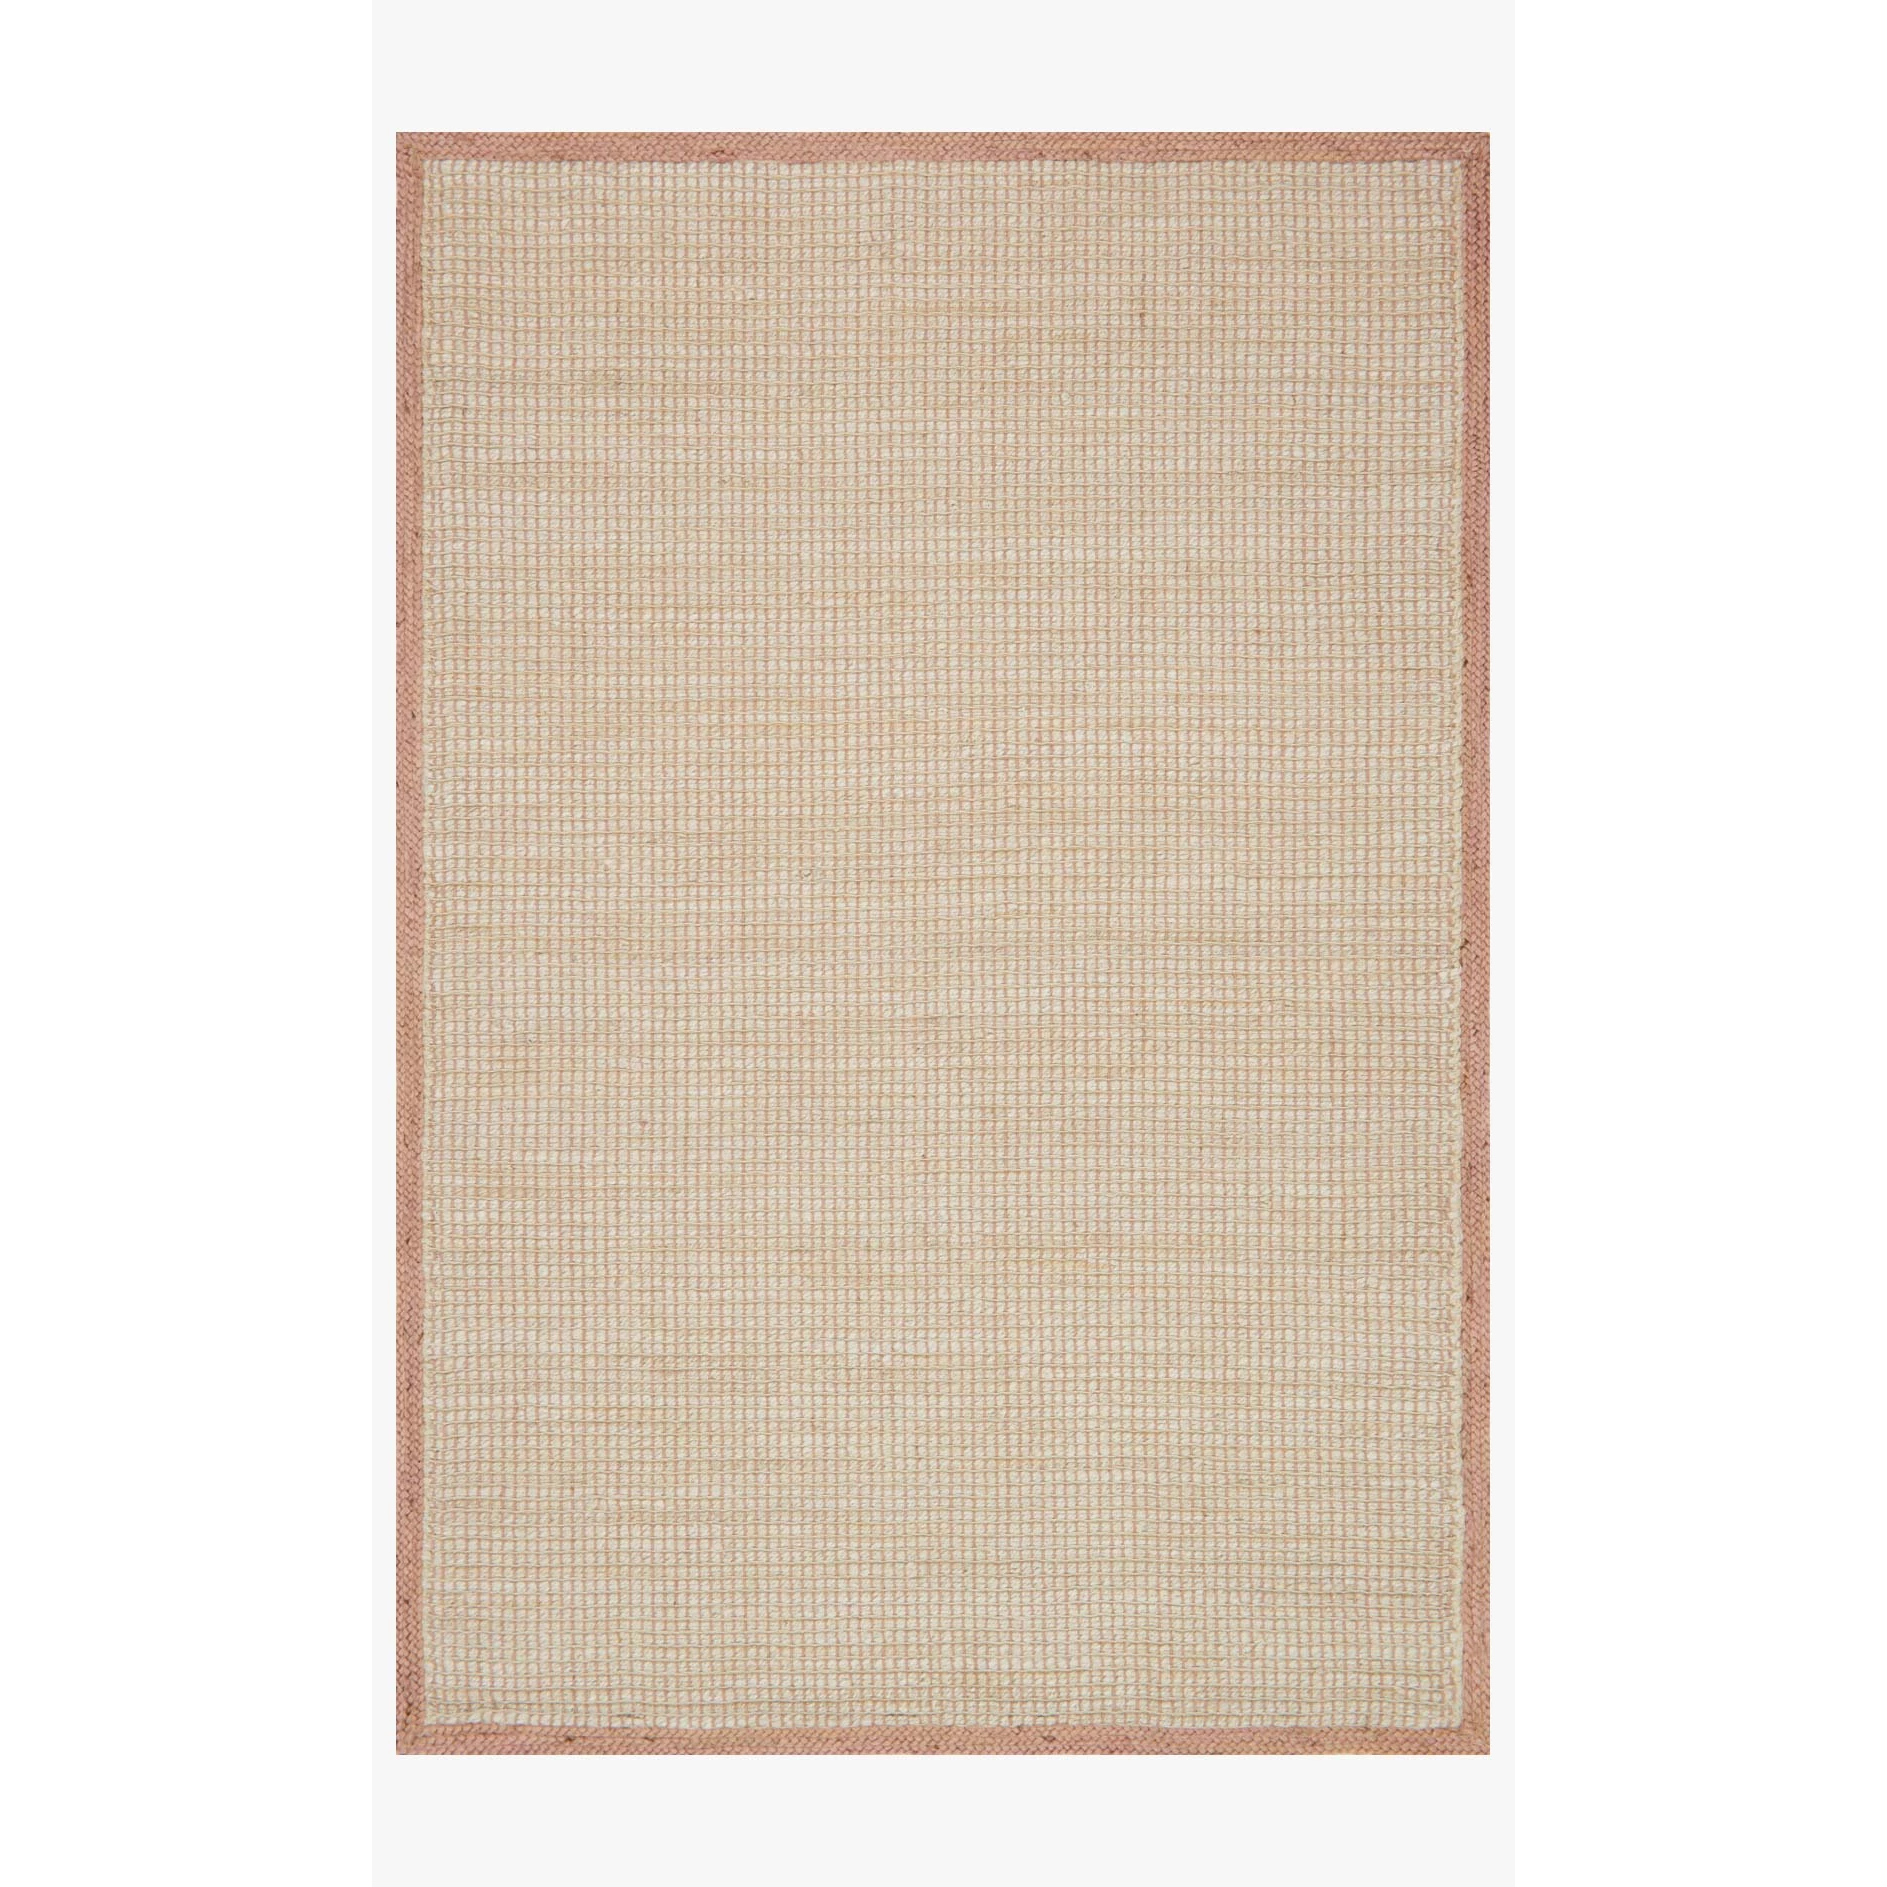 Joanna Gaines of Magnolia Home Sydney Rug Collection - DY-01 BLUSH